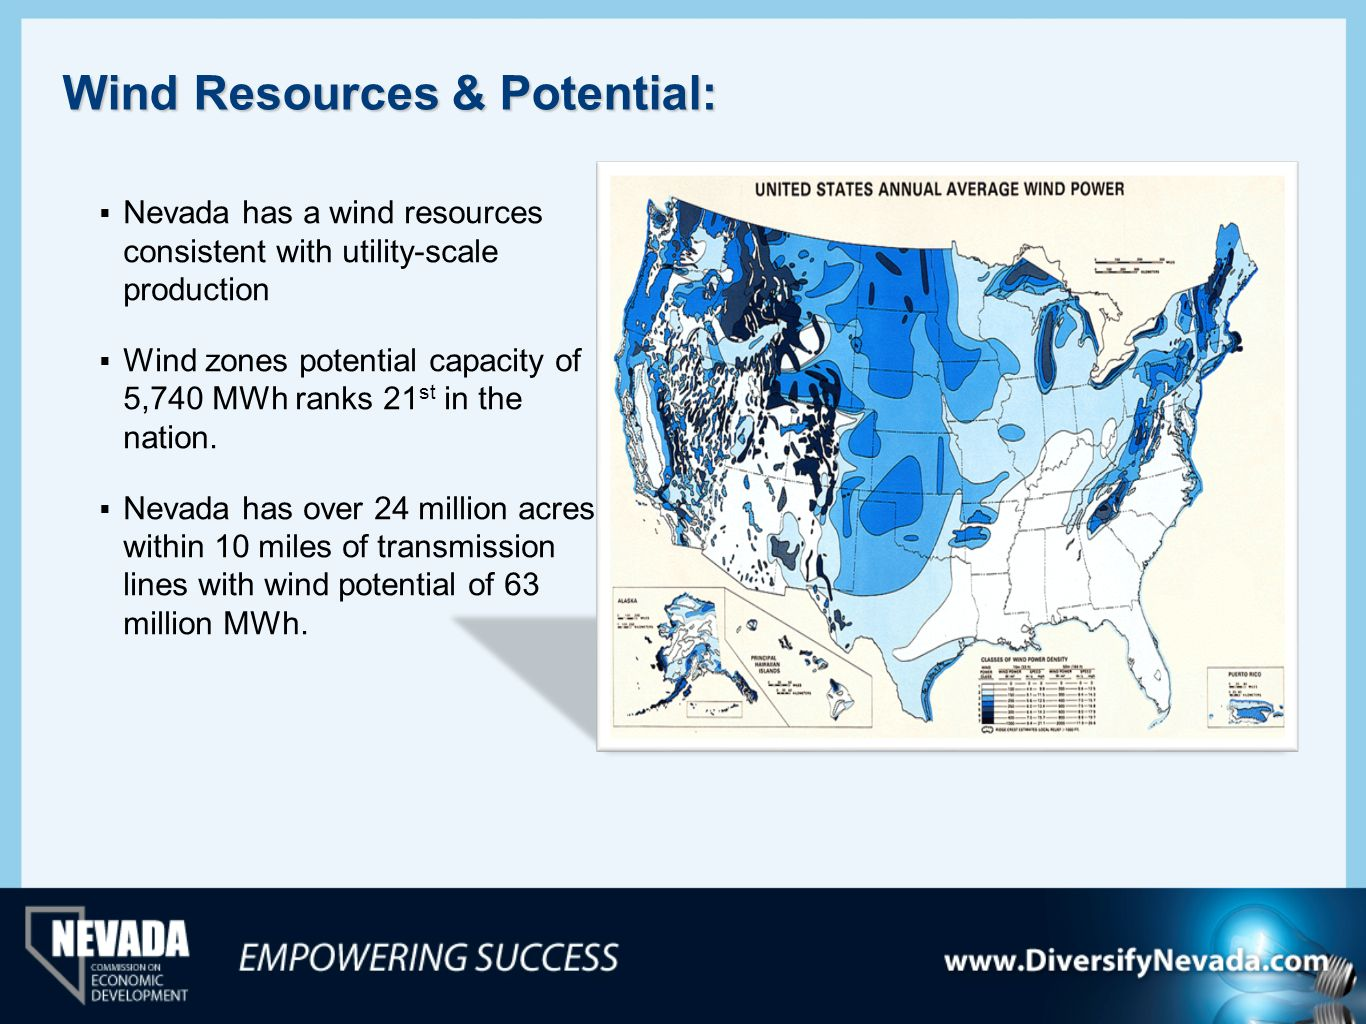 Wind Resources & Potential: